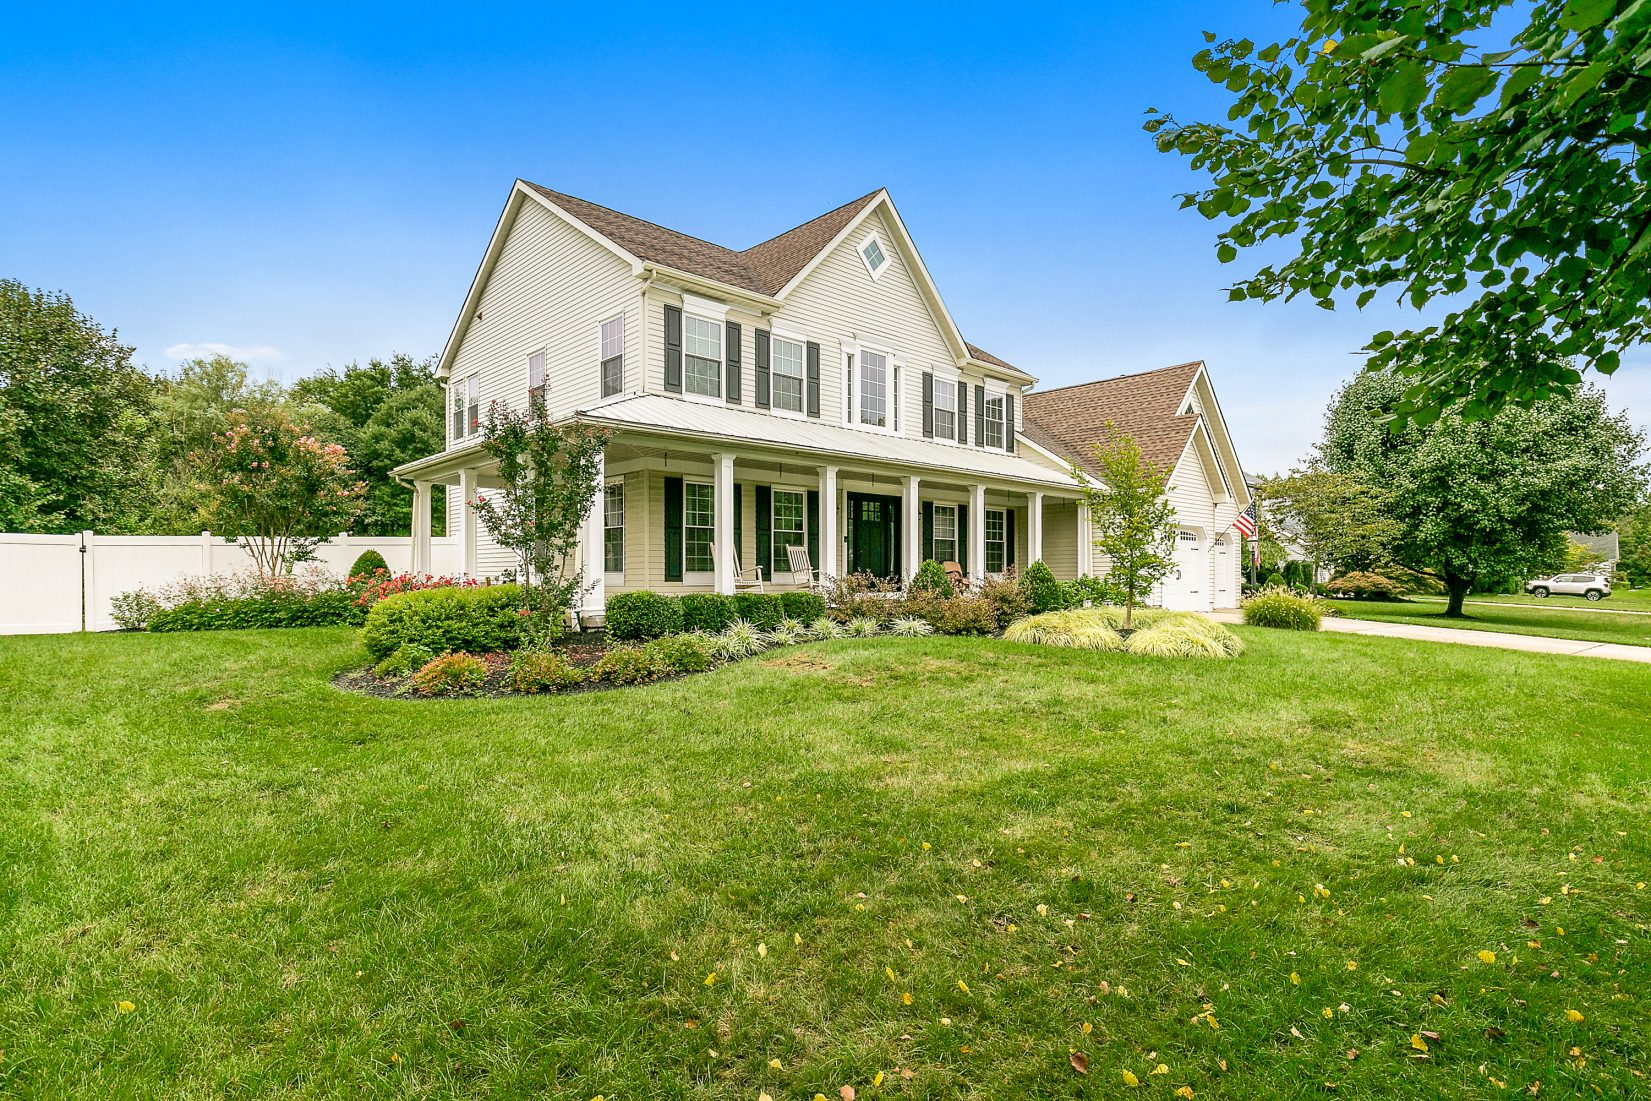 Saratoga Farms Neighborhood in Mount Laurel, NJ